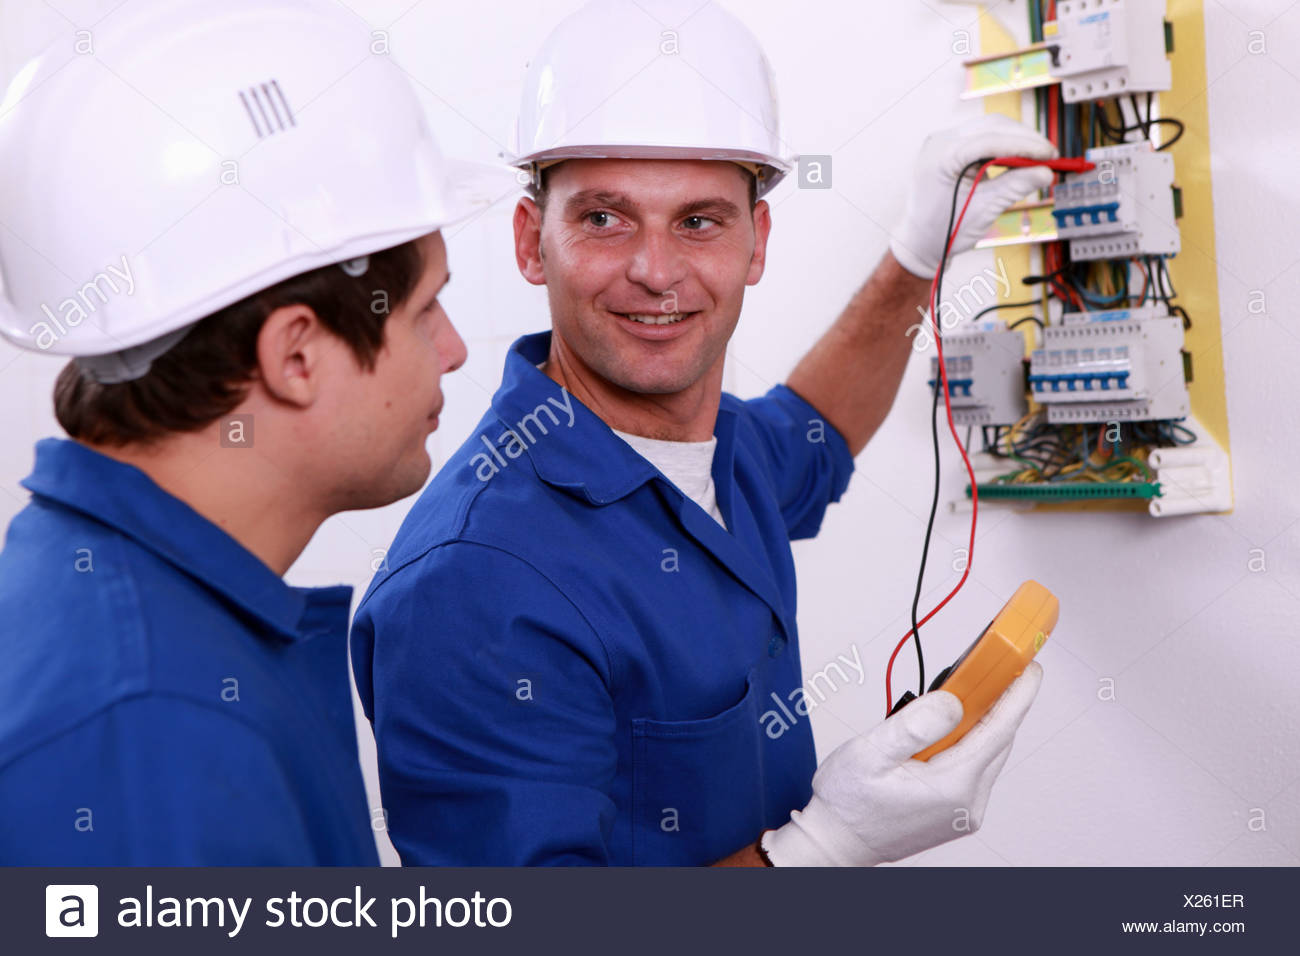 hight resolution of electrical safety inspectors verifying central fuse box